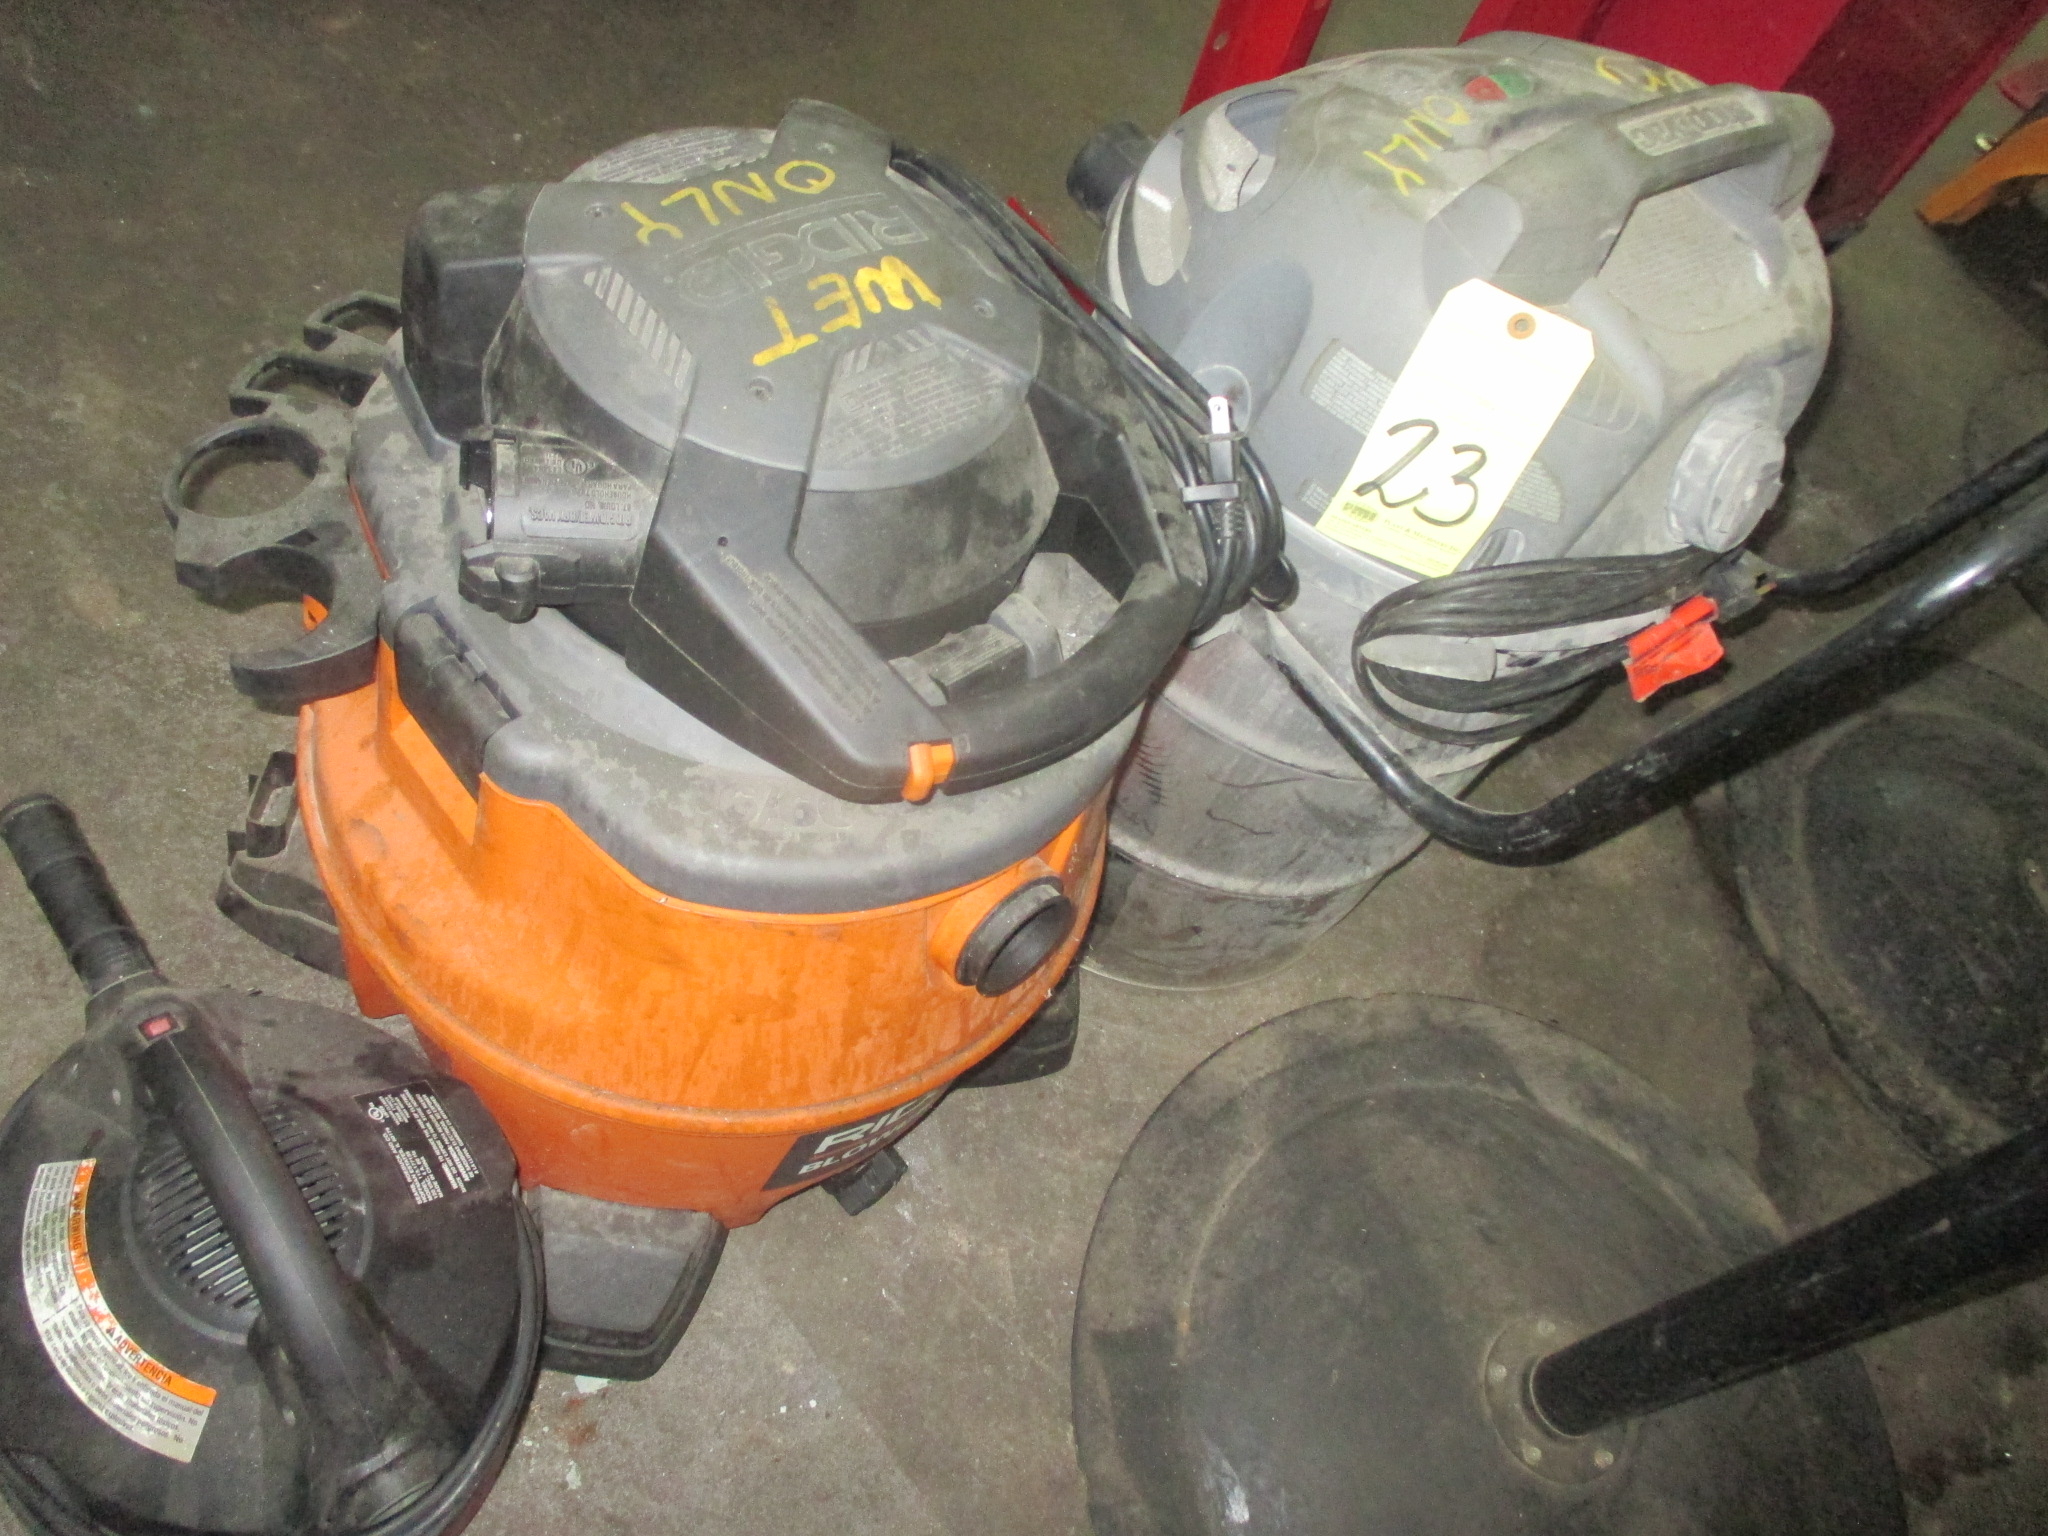 Lot 23 - LOT OF SHOP VACUUMS, SHOP-VAC/RIDGID